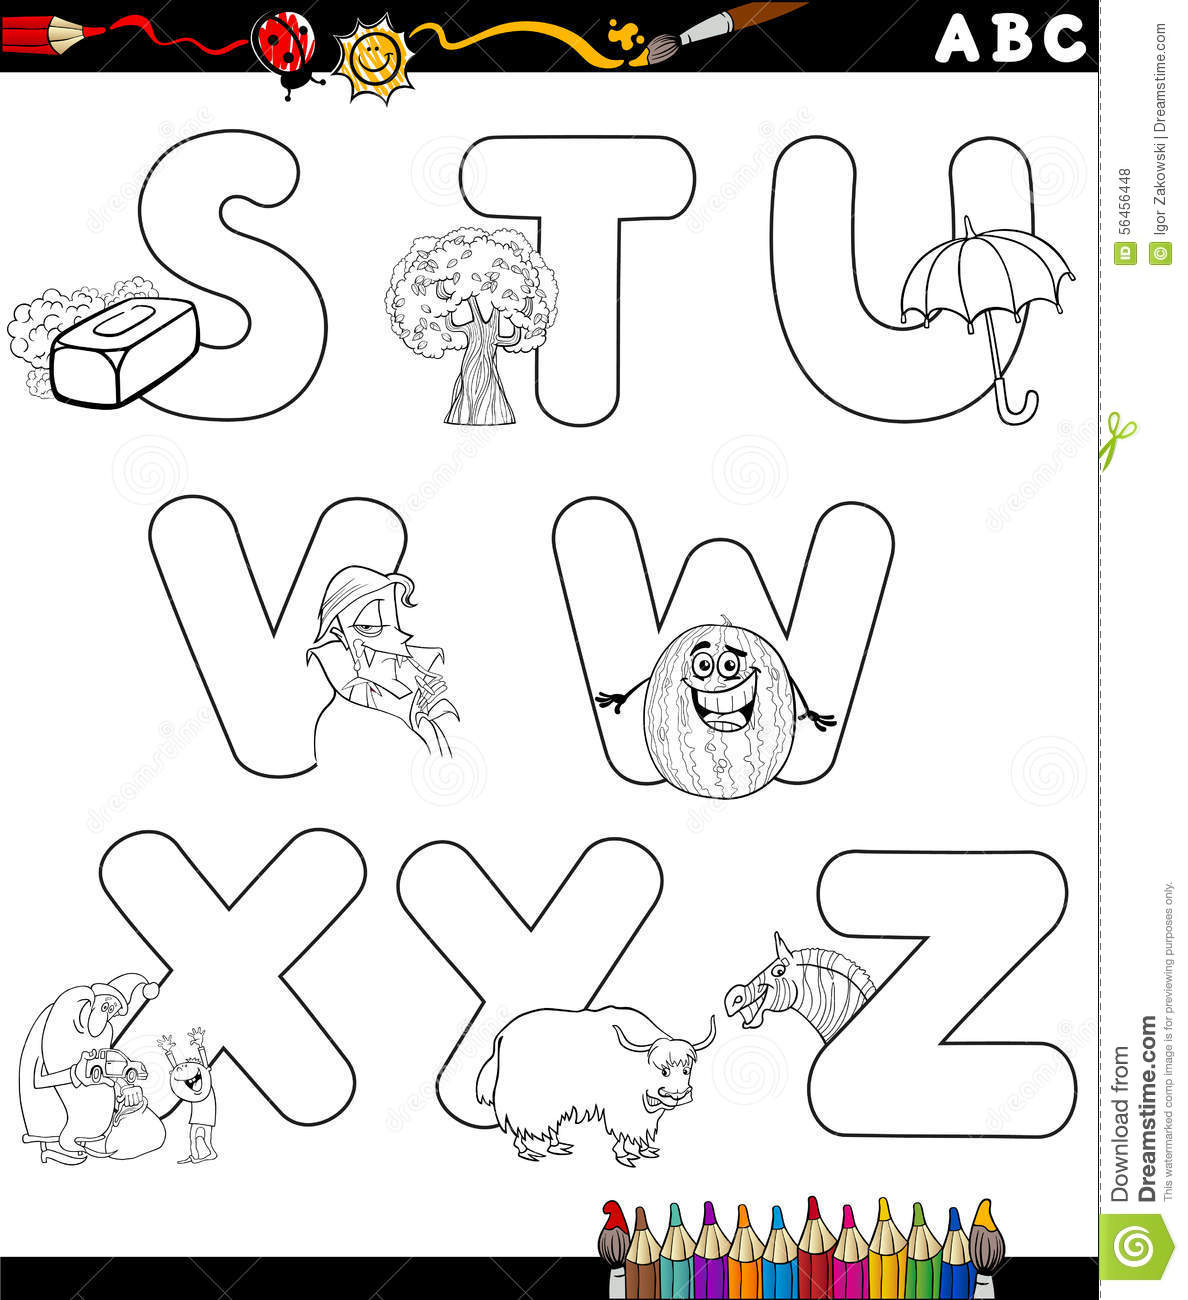 Cartoon Alphabet For Coloring Book Stock Vector - Illustration of ...